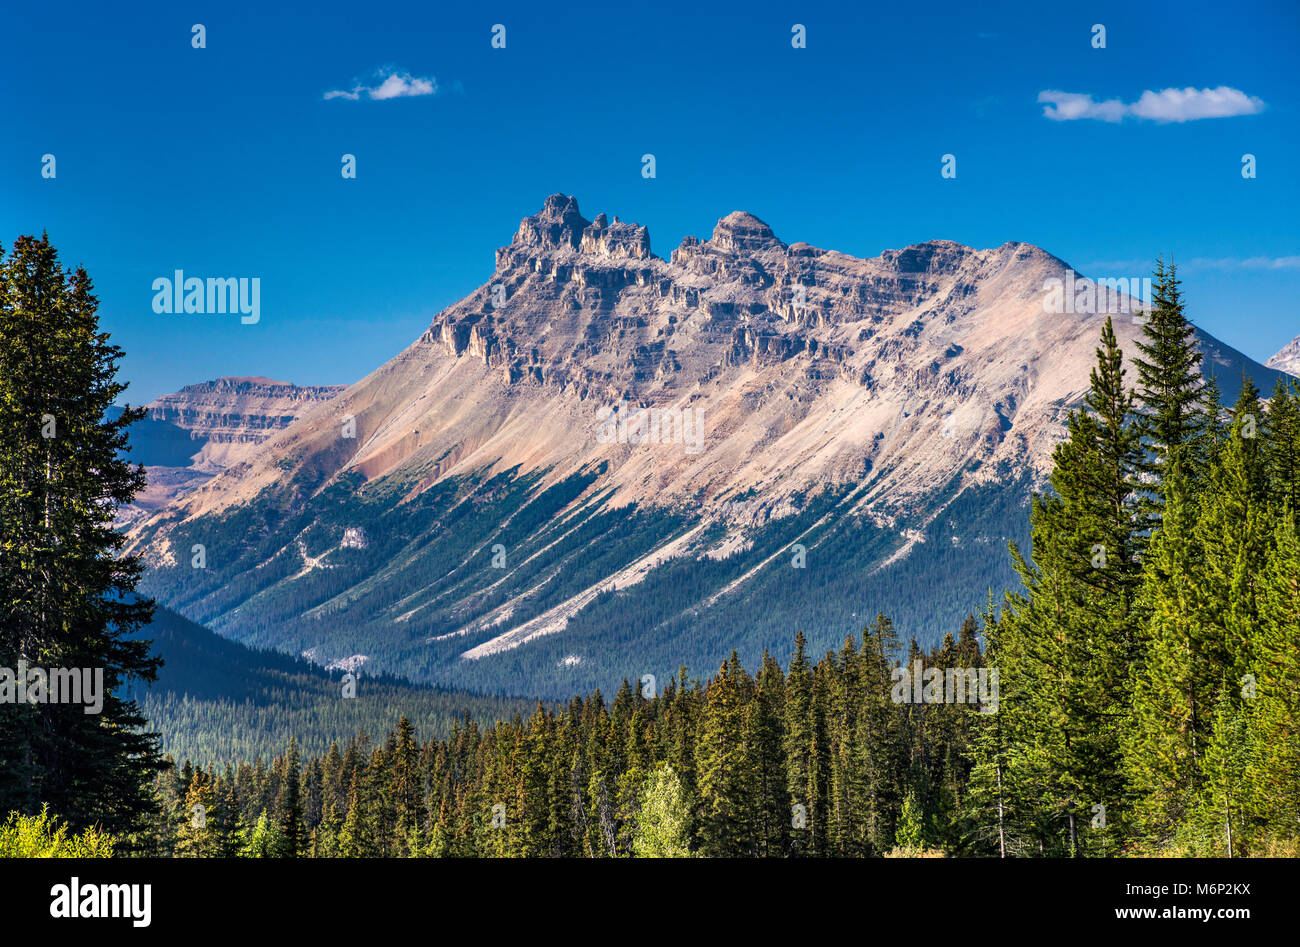 Dolomite Peak, Park Ranges aka Main Ranges of Canadian Rockies, from The Icefields Parkway, Banff National Park, - Stock Image